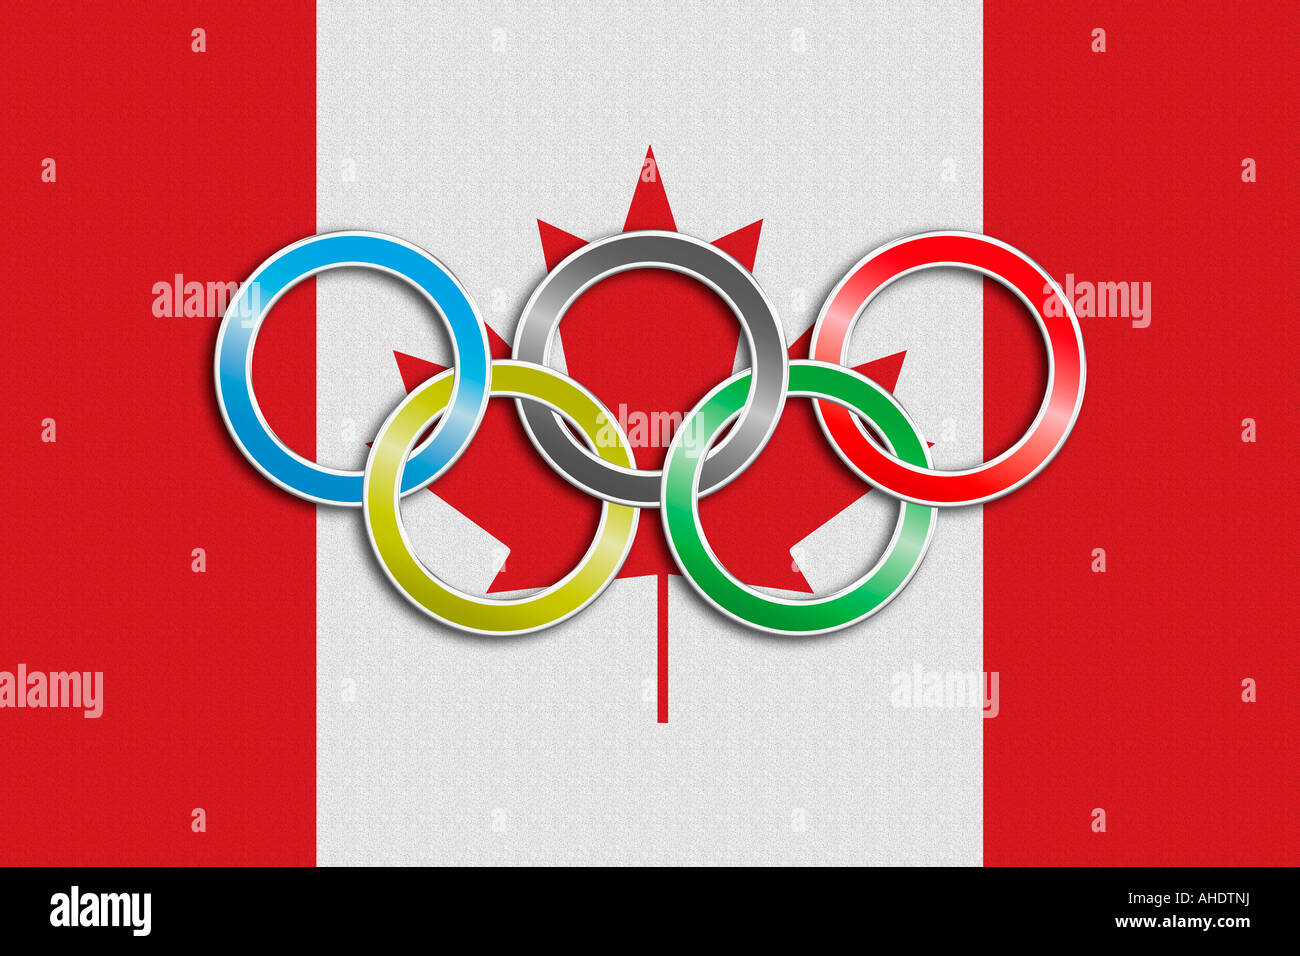 Flag of Canada with olympic symbol - Stock Image